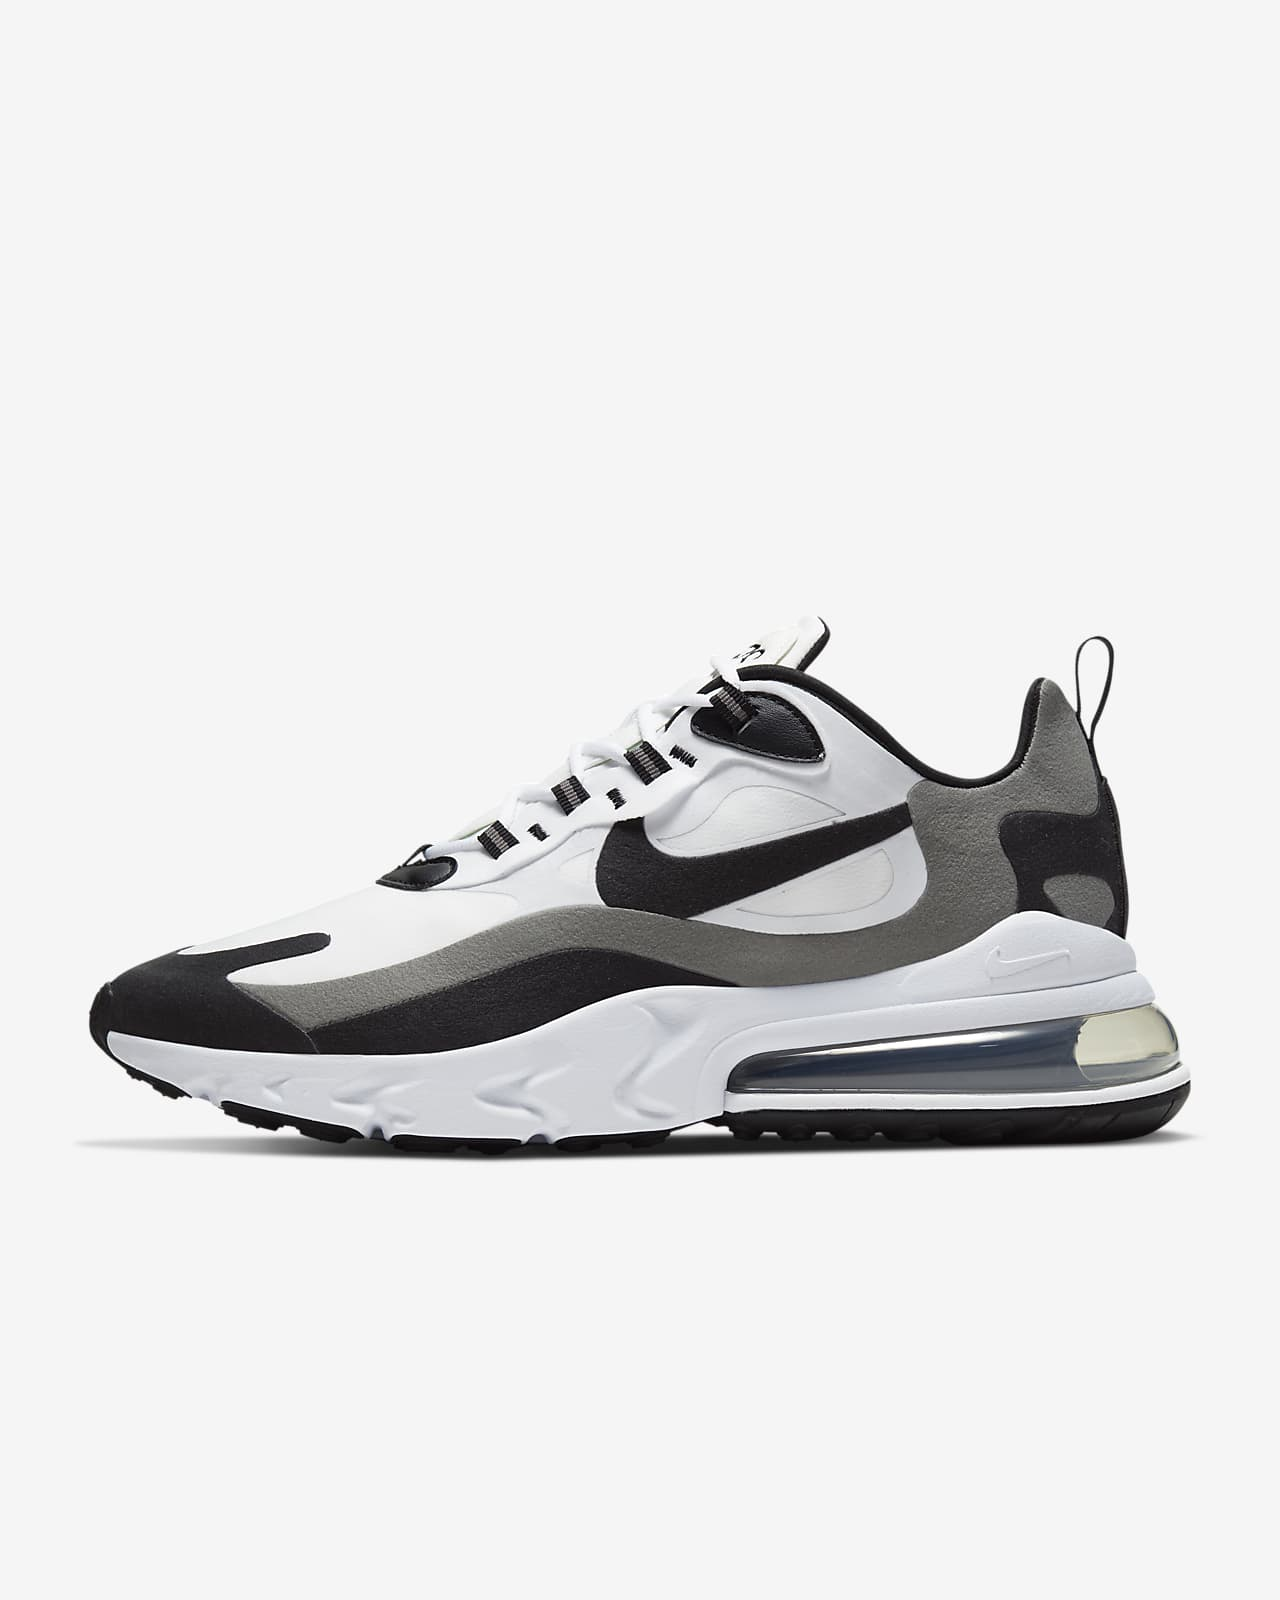 nike air max 270 white orange black